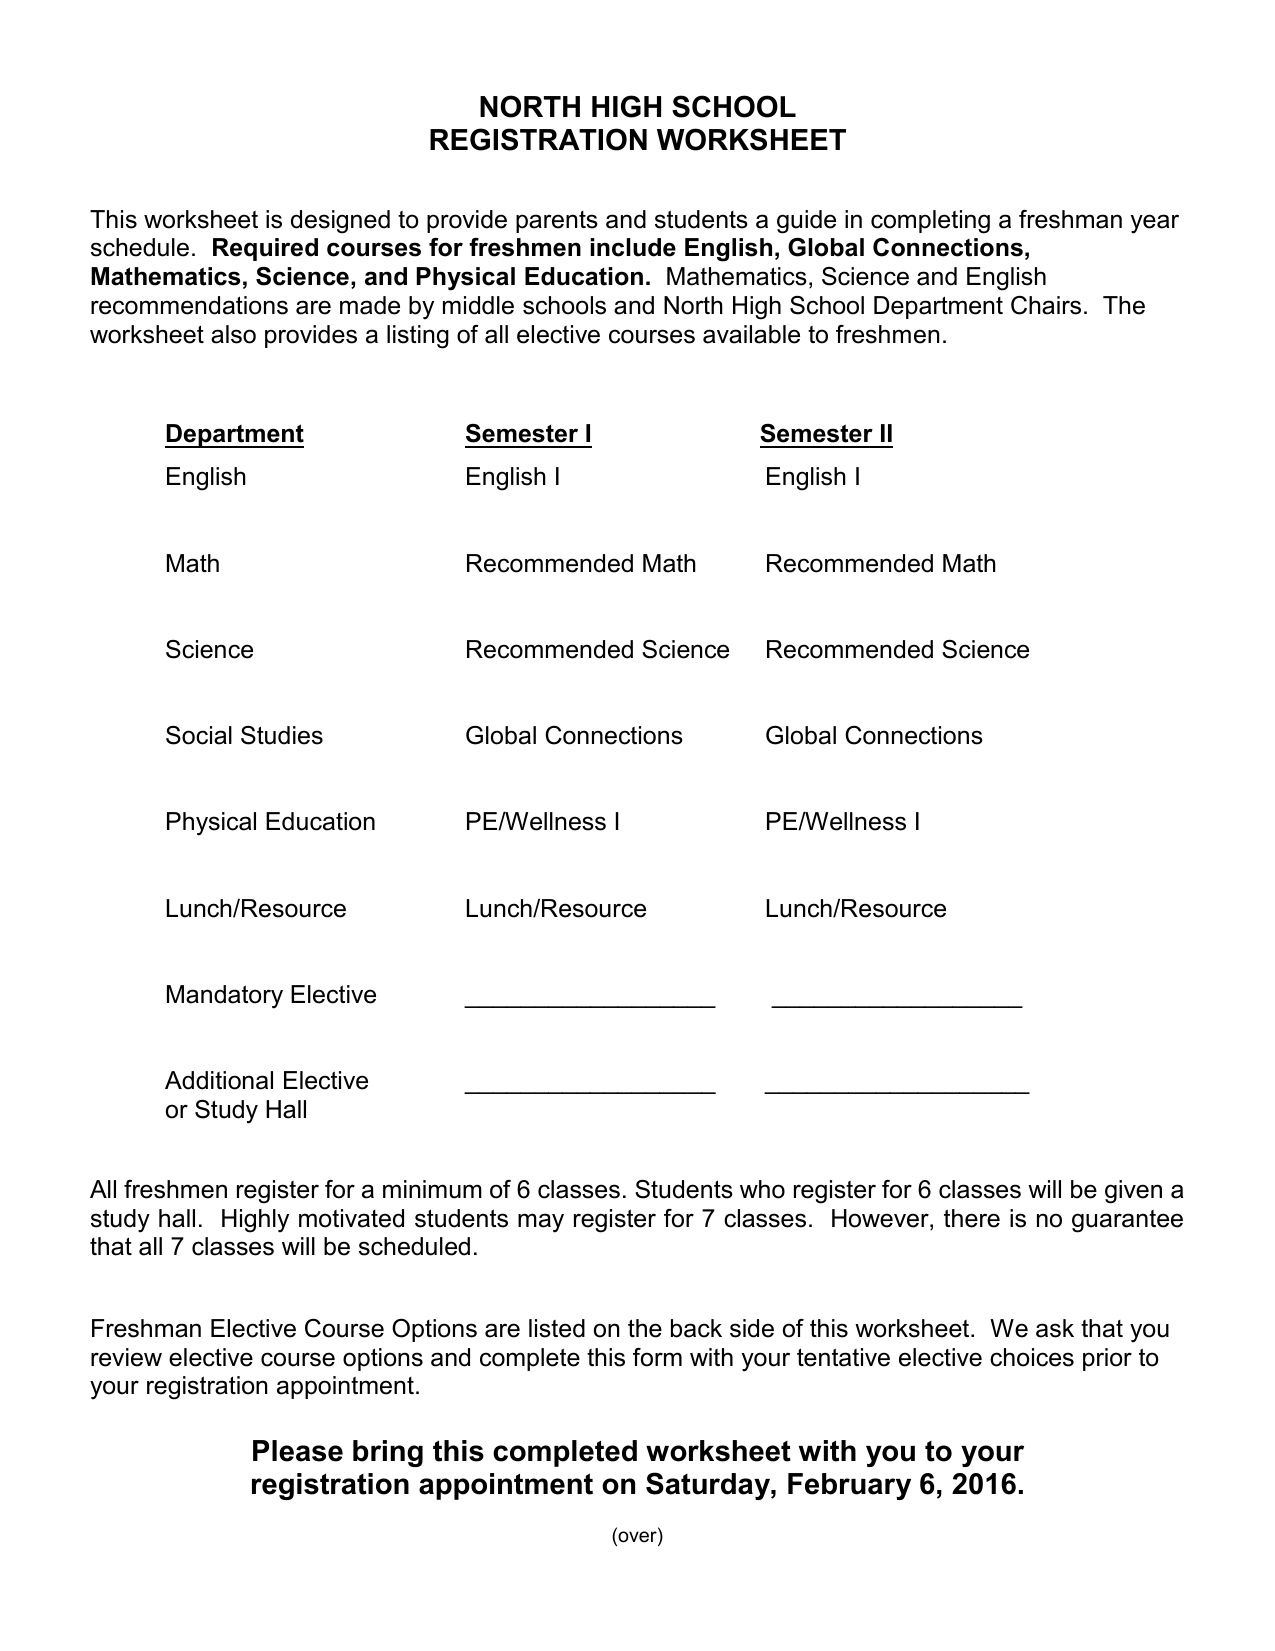 Registration Worksheet